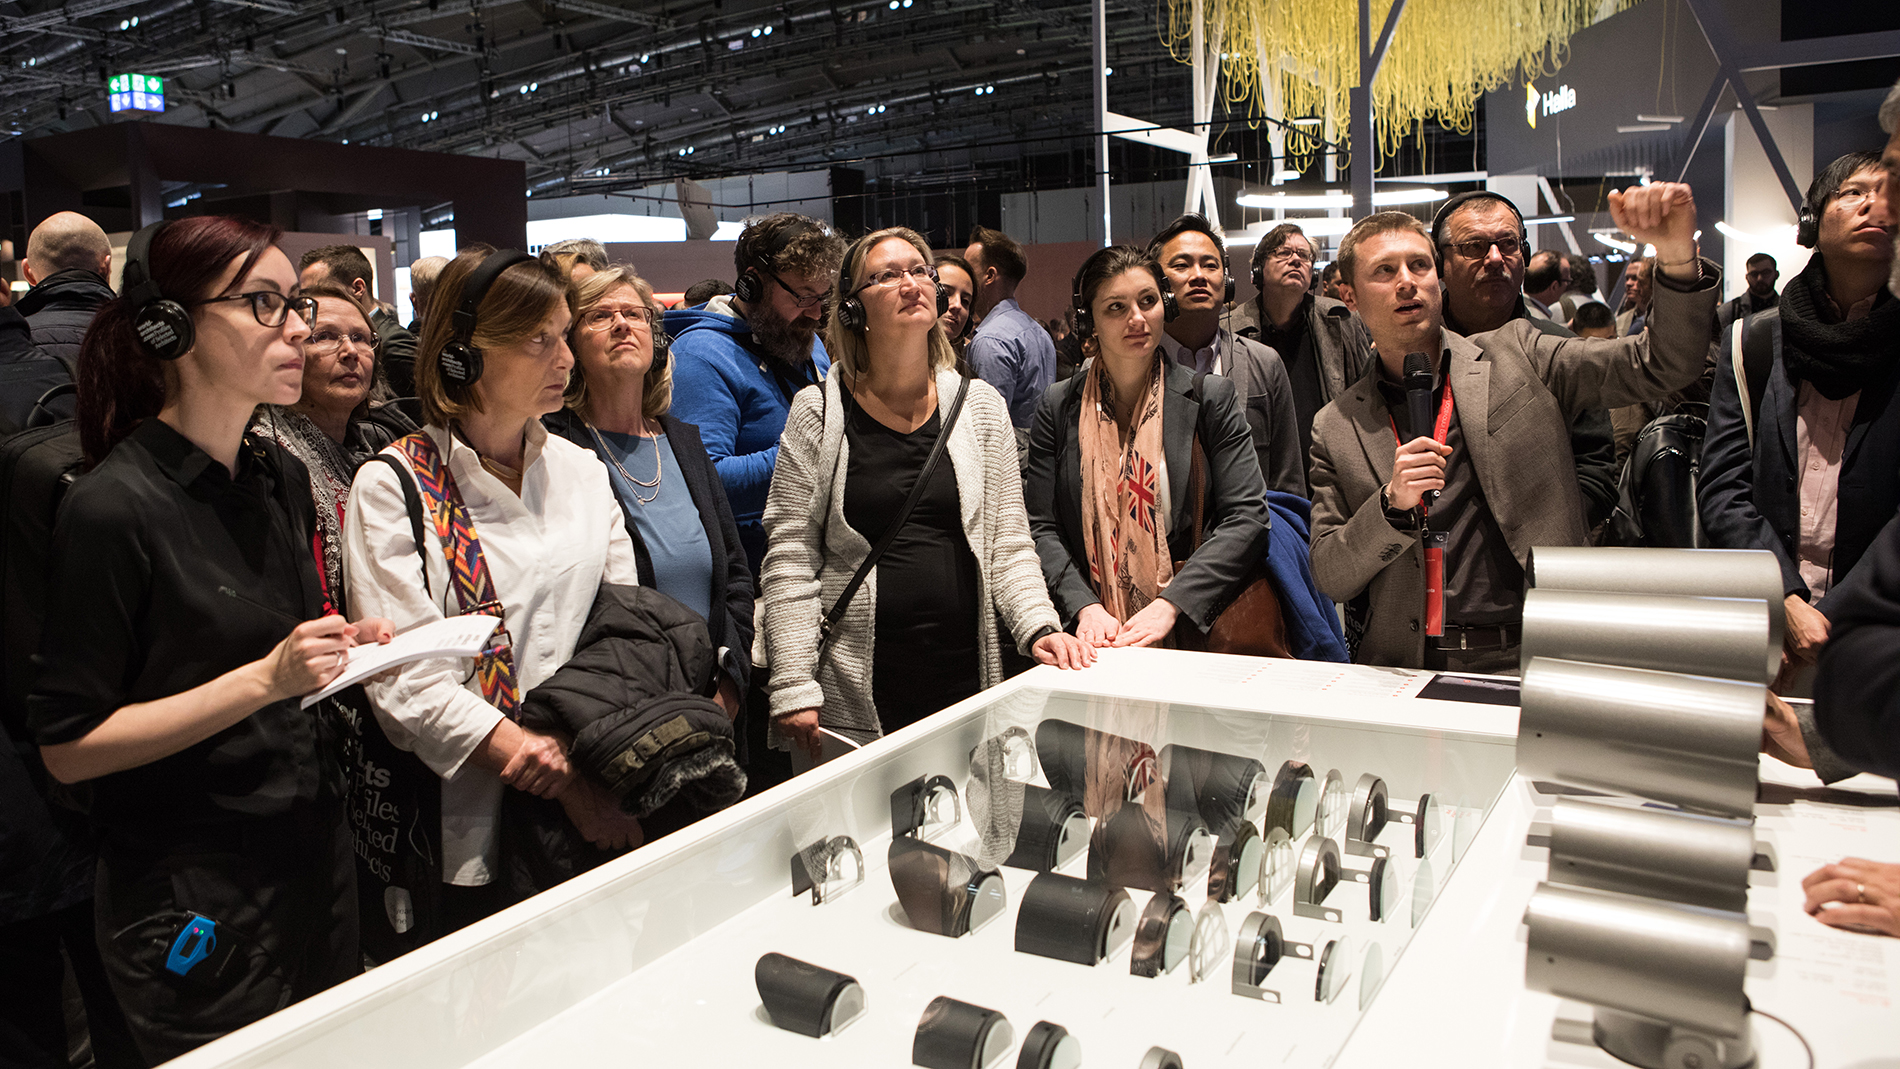 Guided tour at Light + Building